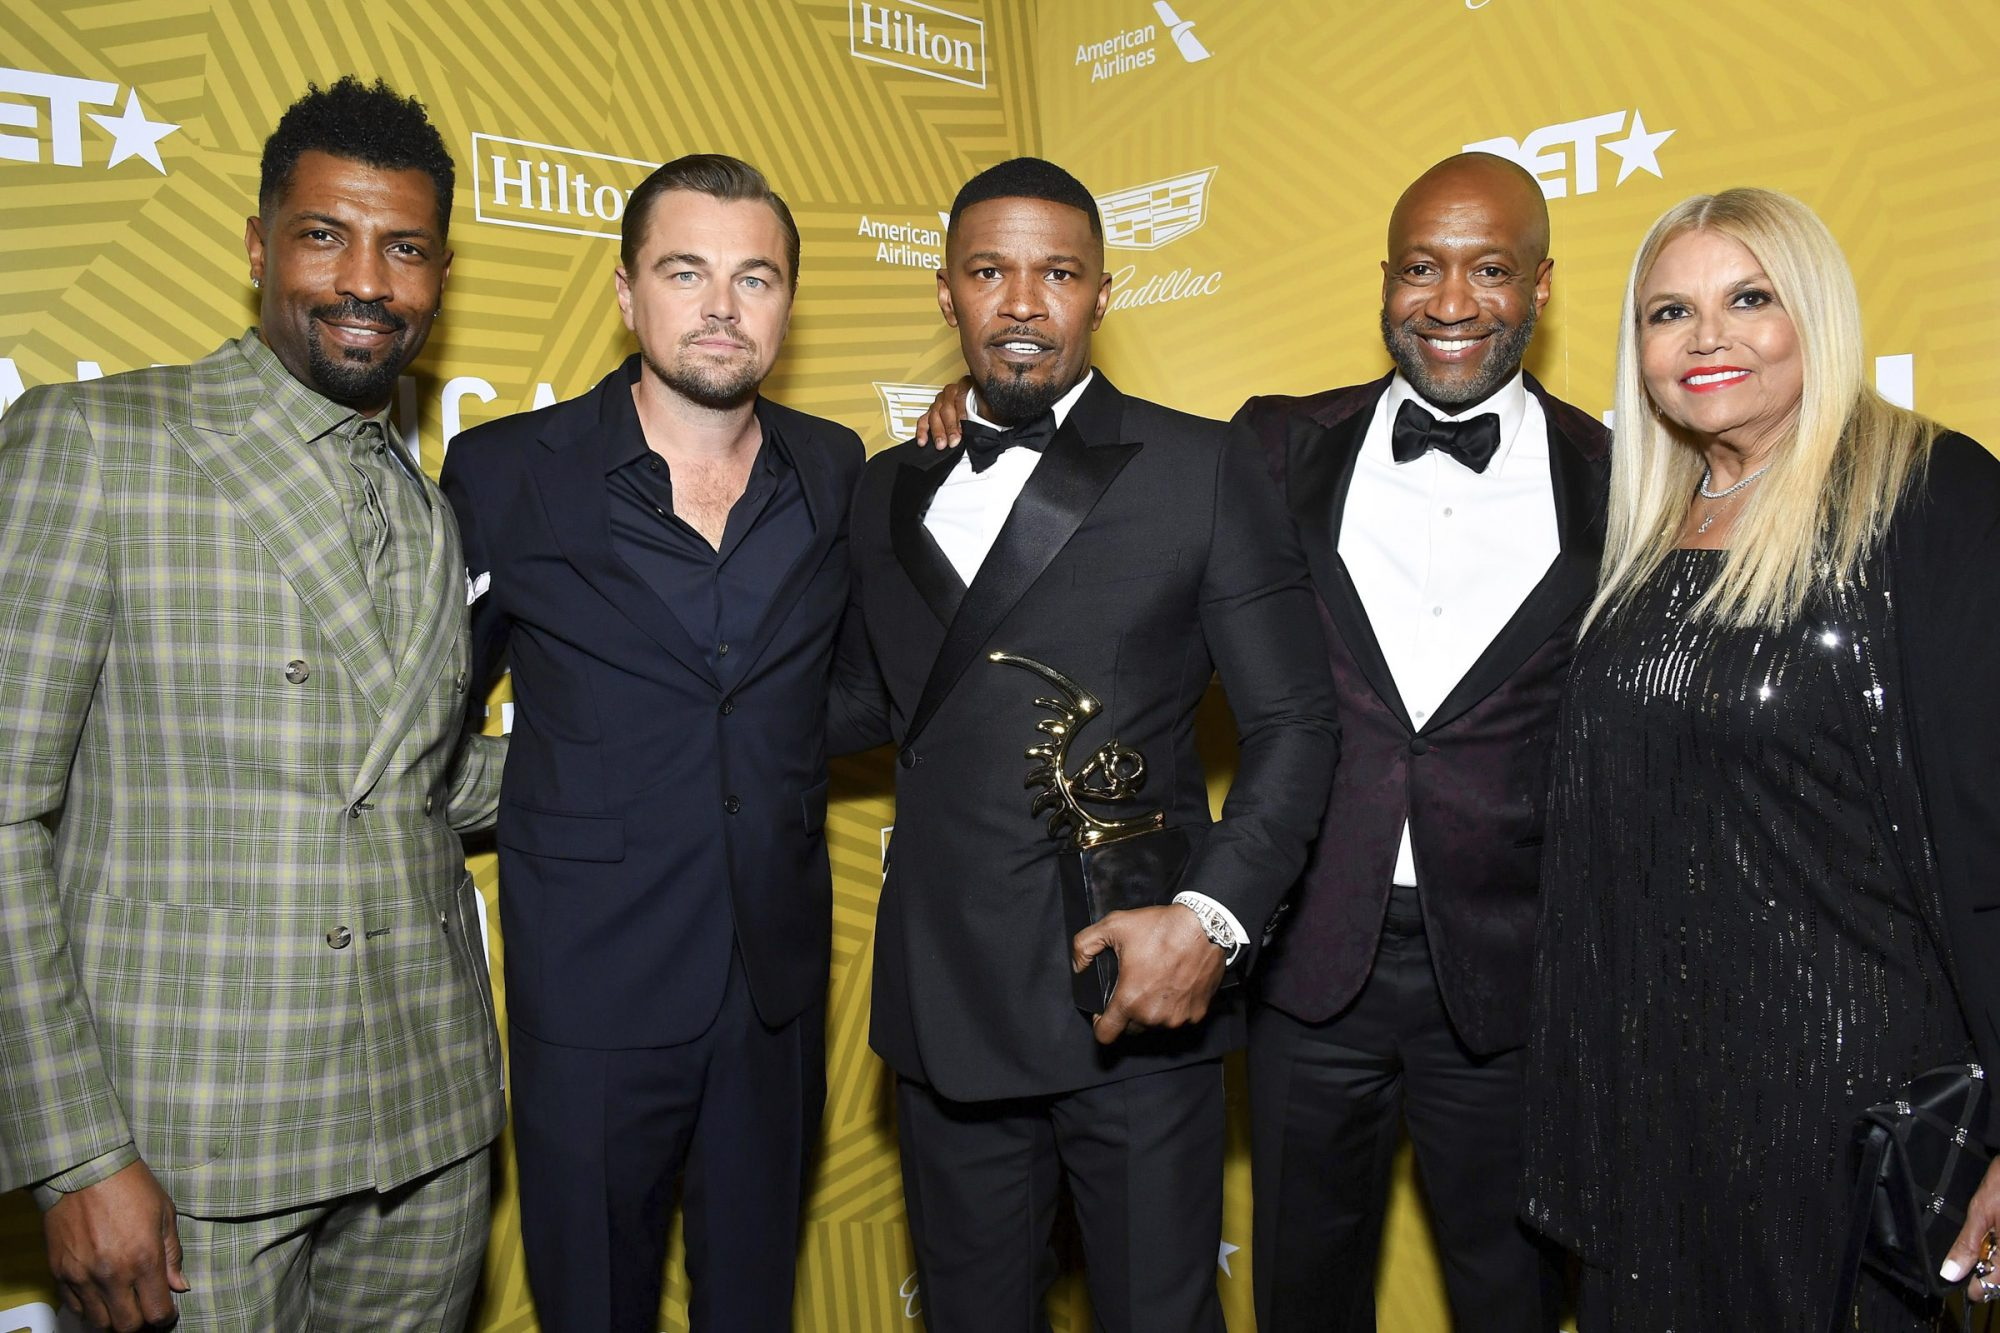 Jamie Foxx (C) poses with the Excellence in the Arts Award backstage with Deon Cole, Leonardo DiCaprio, Jeff Friday, and Suzanne de Passe